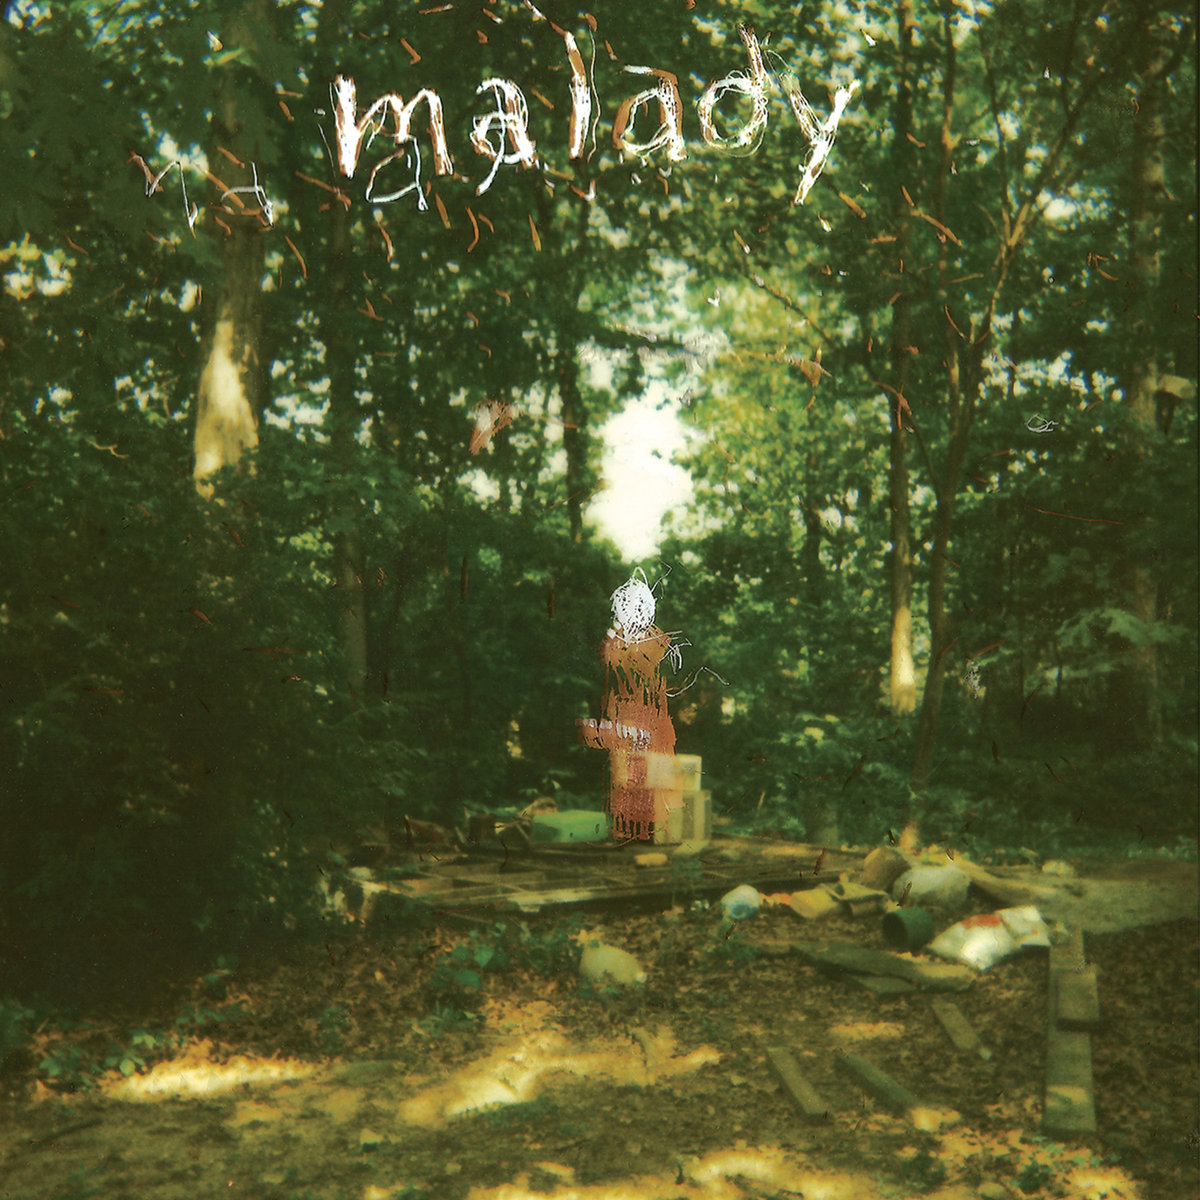 MALADY s/t – Vinyl LP (green with brown splatter)